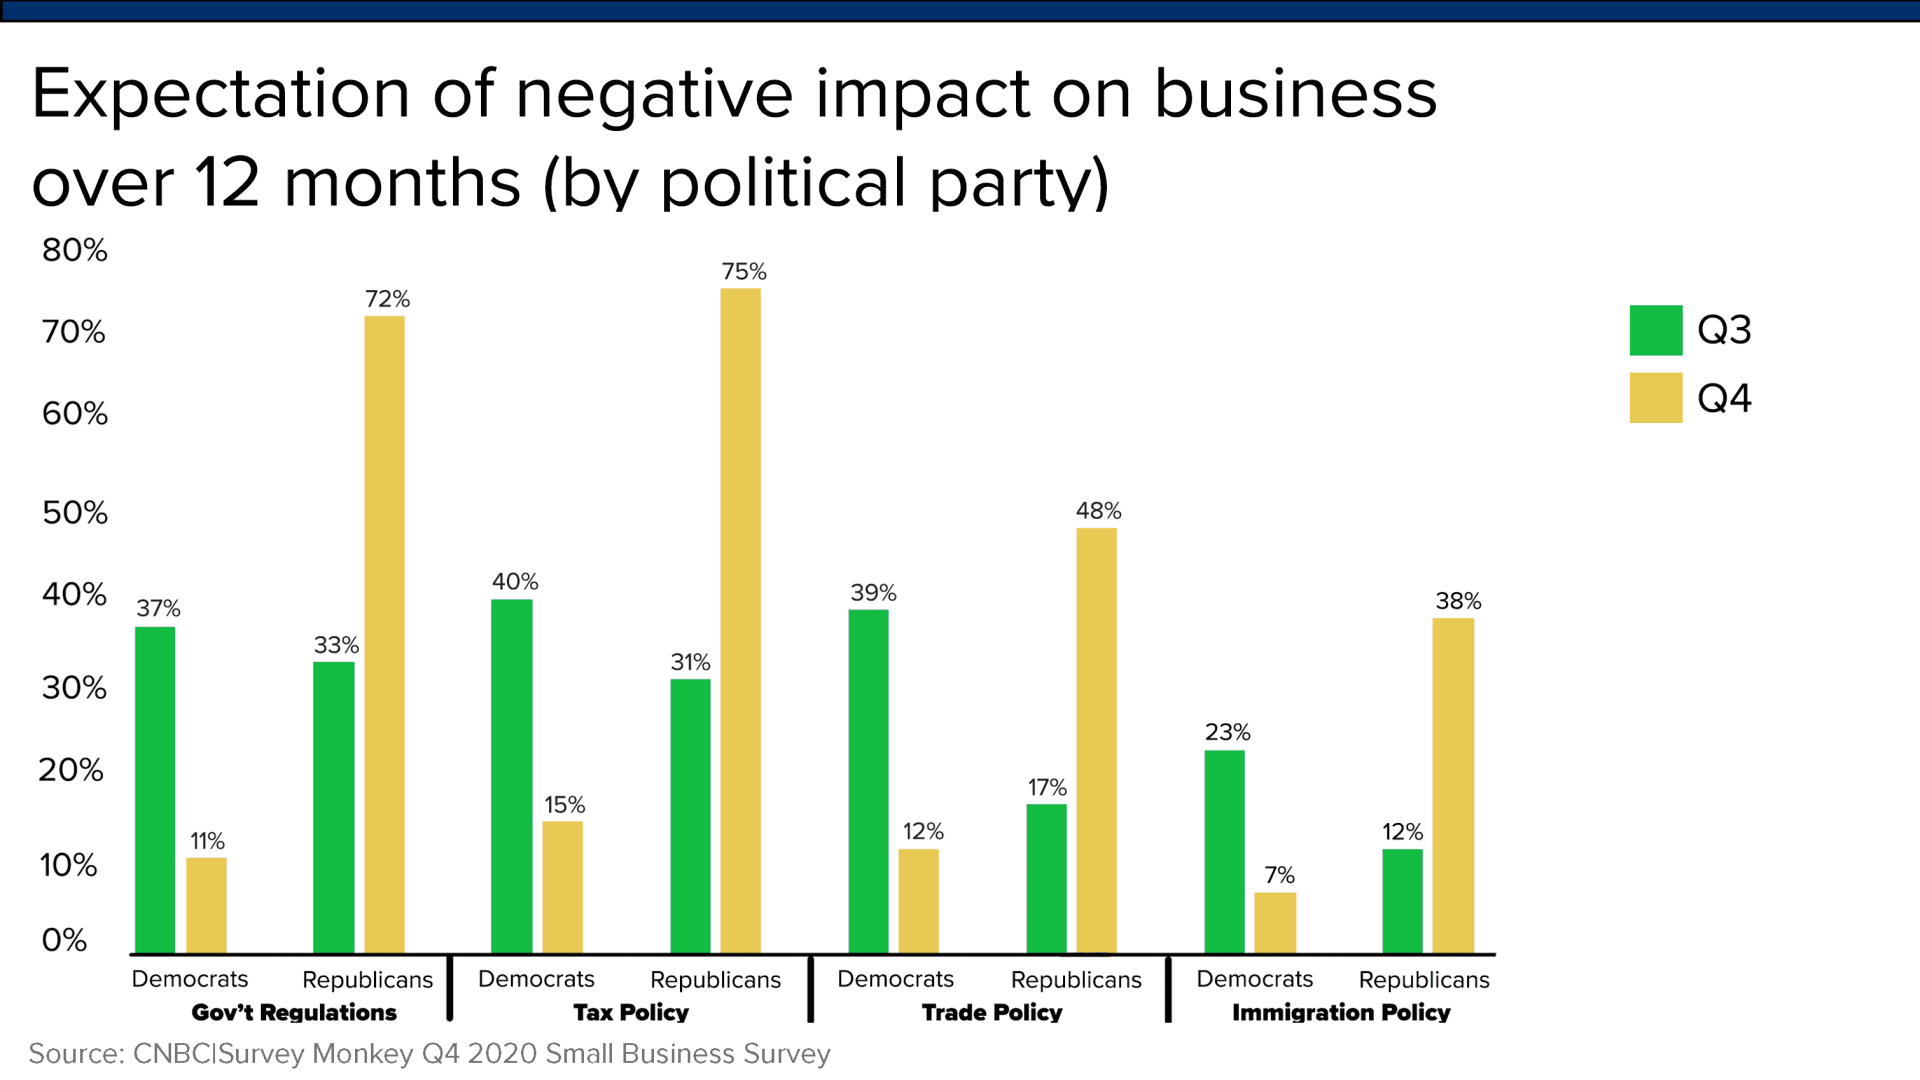 Concerns about government tax and regulatory policy rose sharply among Republican small business owners after Joseph Biden's victory in the 2020 presidential election.